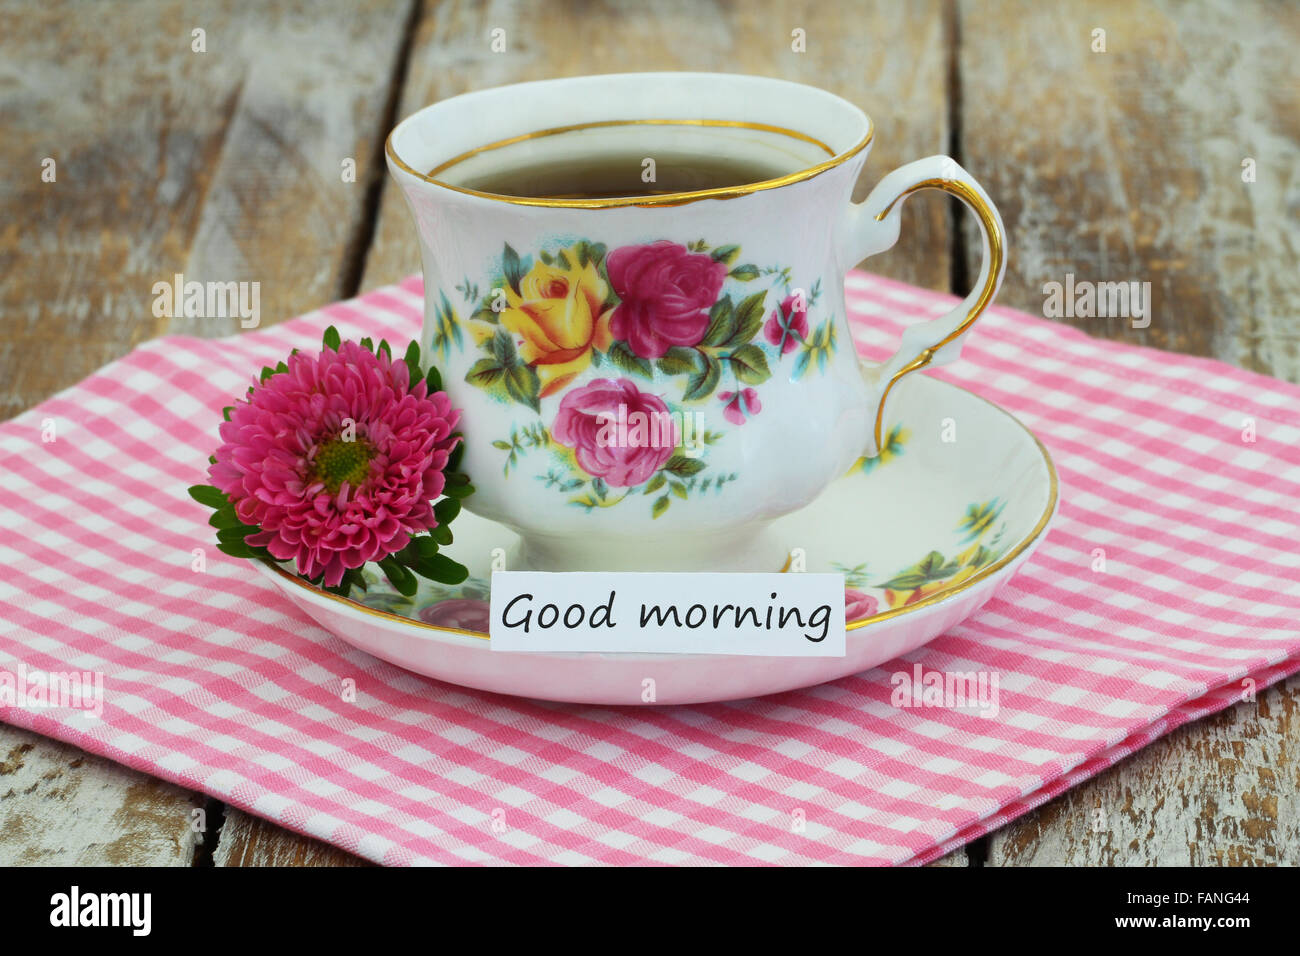 Good Morning Vintage Photos : Good morning card with tea in vintage cup and pink daisy